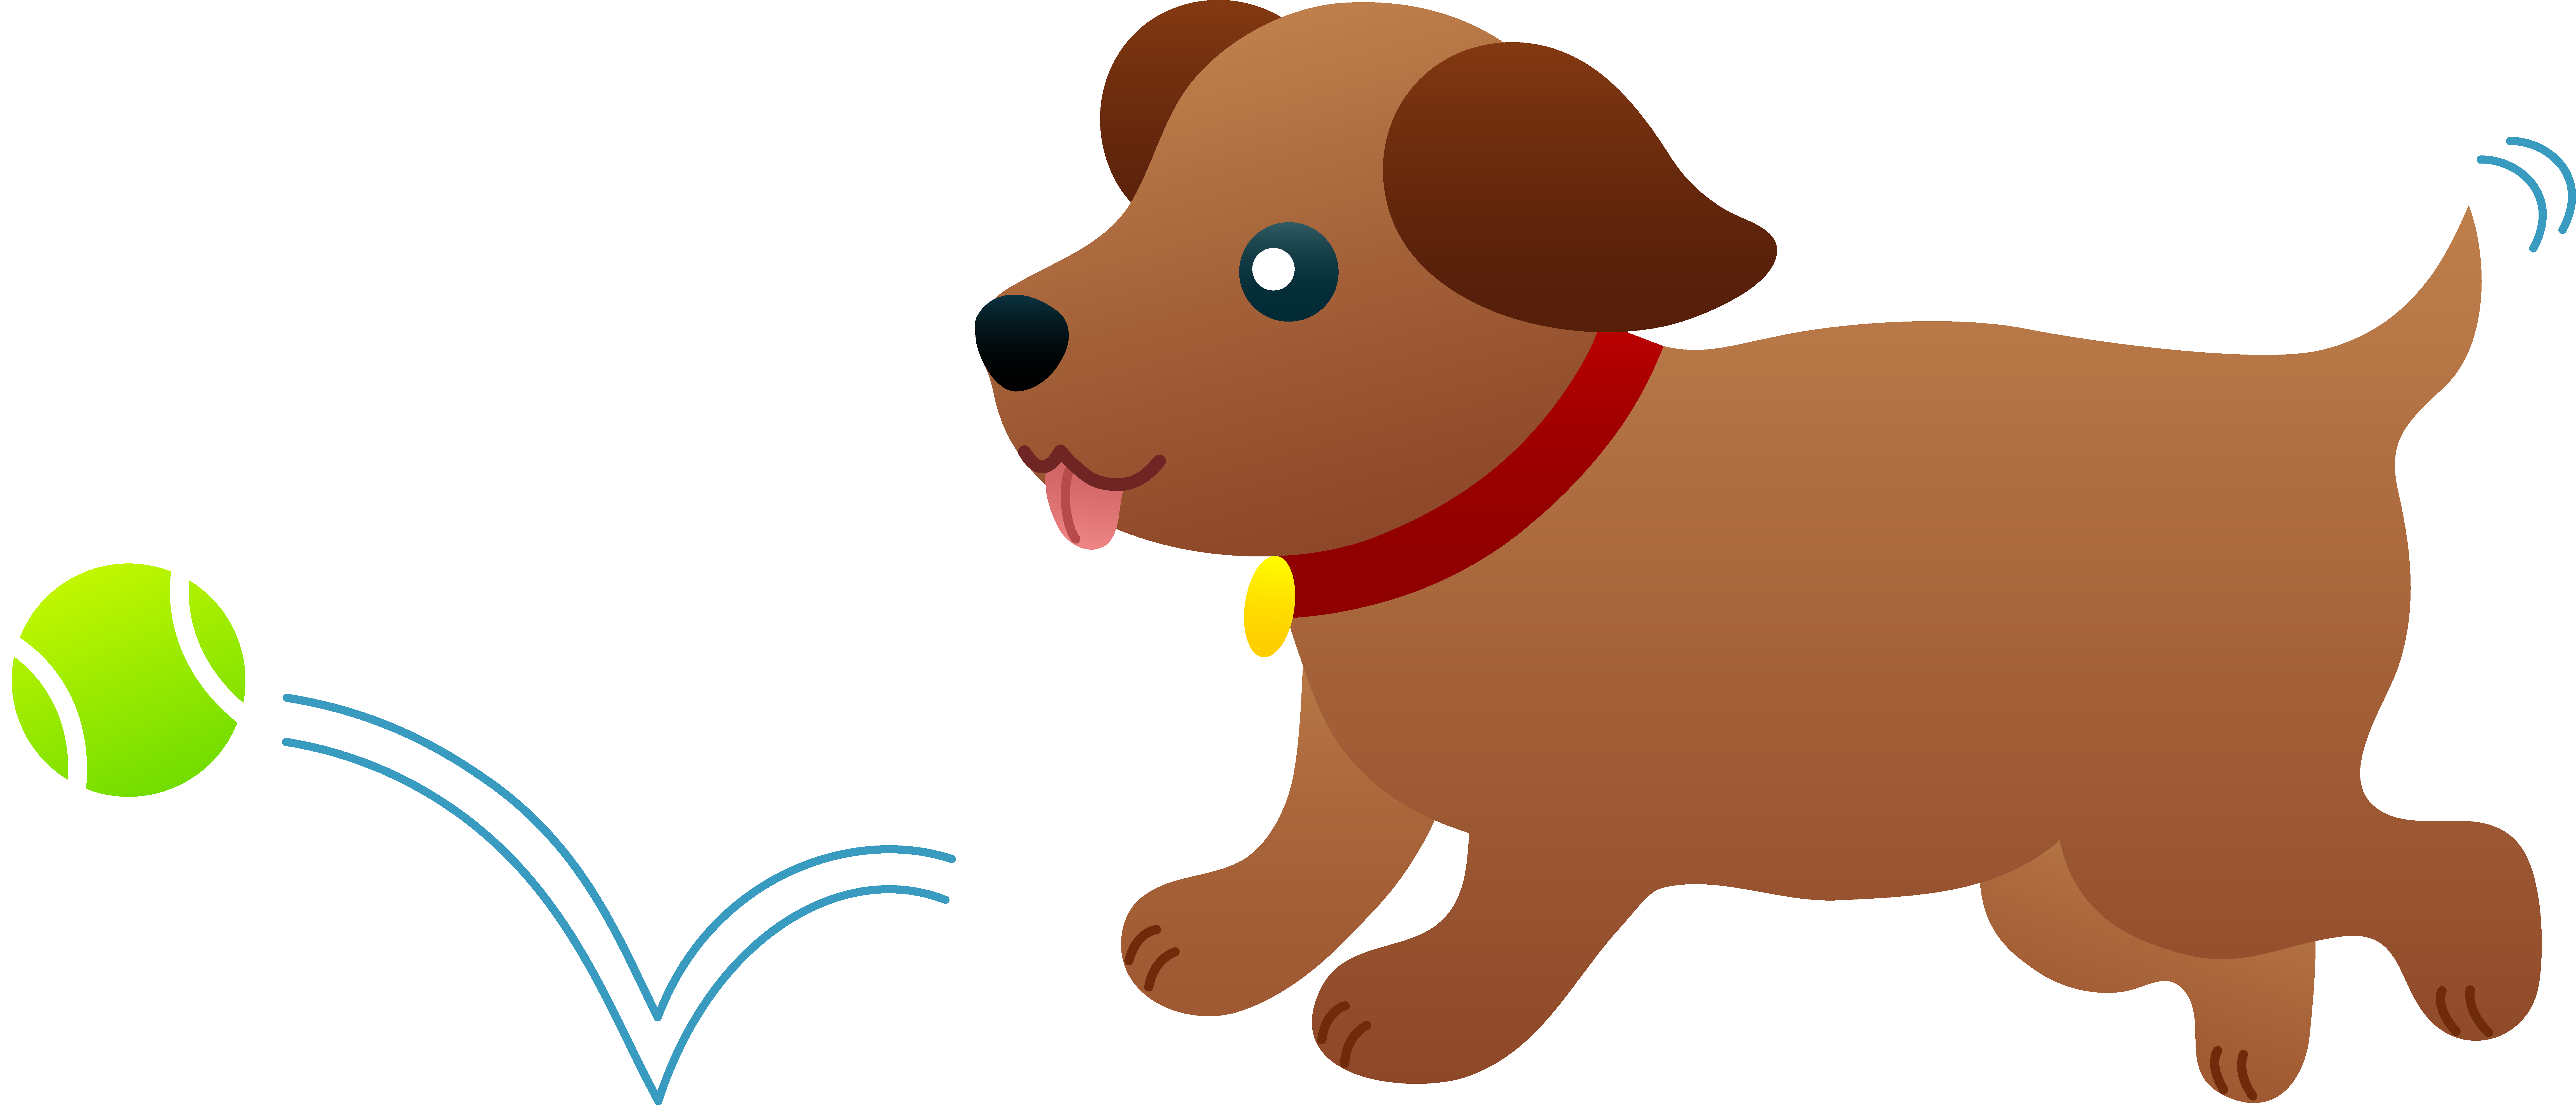 Puppy Chasing After Ball - Free Clip Art-Puppy Chasing After Ball - Free Clip Art-18